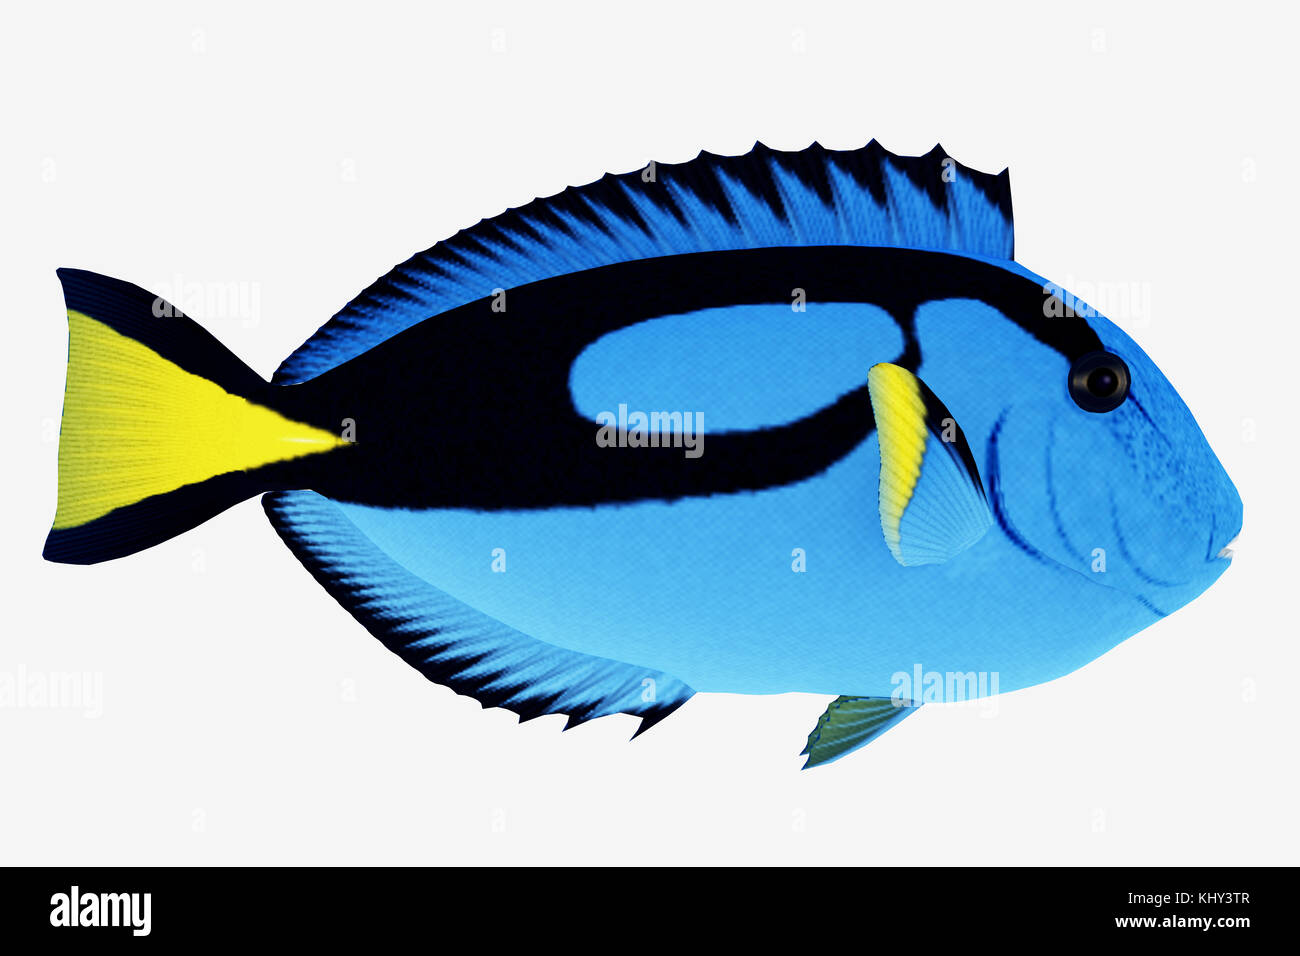 Blue Tang Fish - The Blue Tang Fish is a saltwater species reef fish in tropical regions of Indo-Pacific oceans - Stock Image